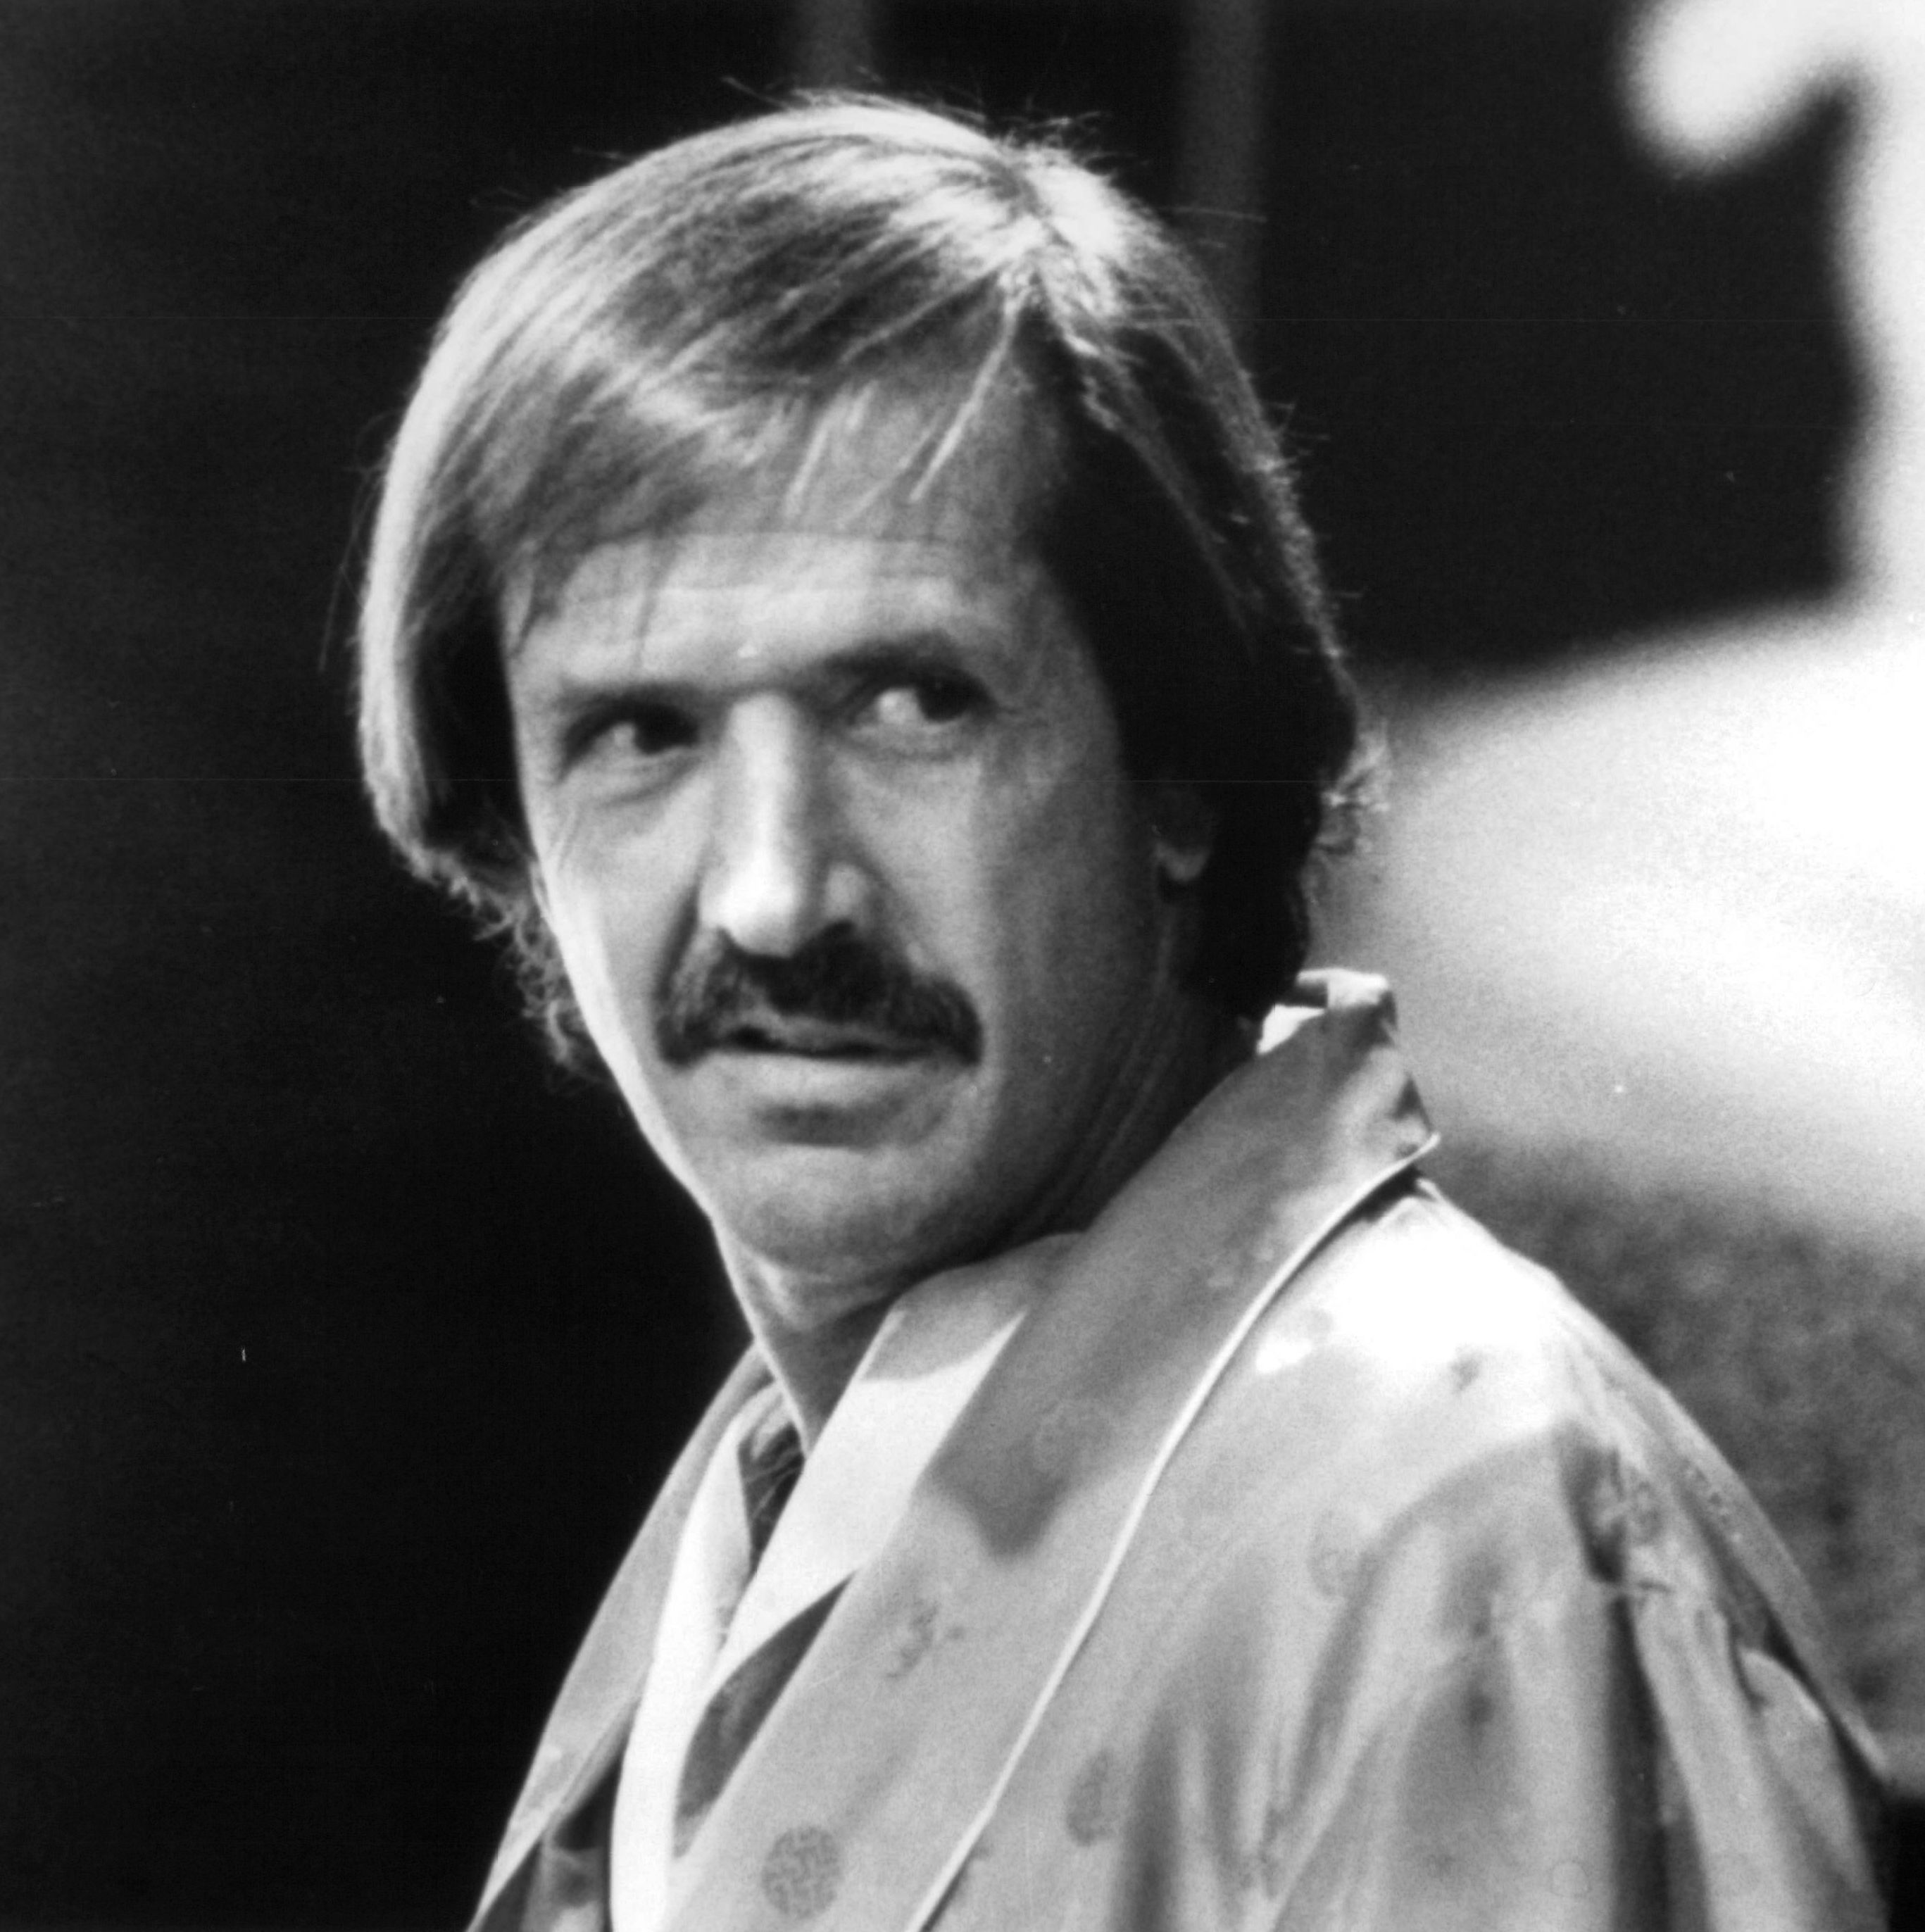 1986: Sonny Bono One half of the singing duo Sonny & Cher kept a striking, well-groomed mustache for much of his adult life.